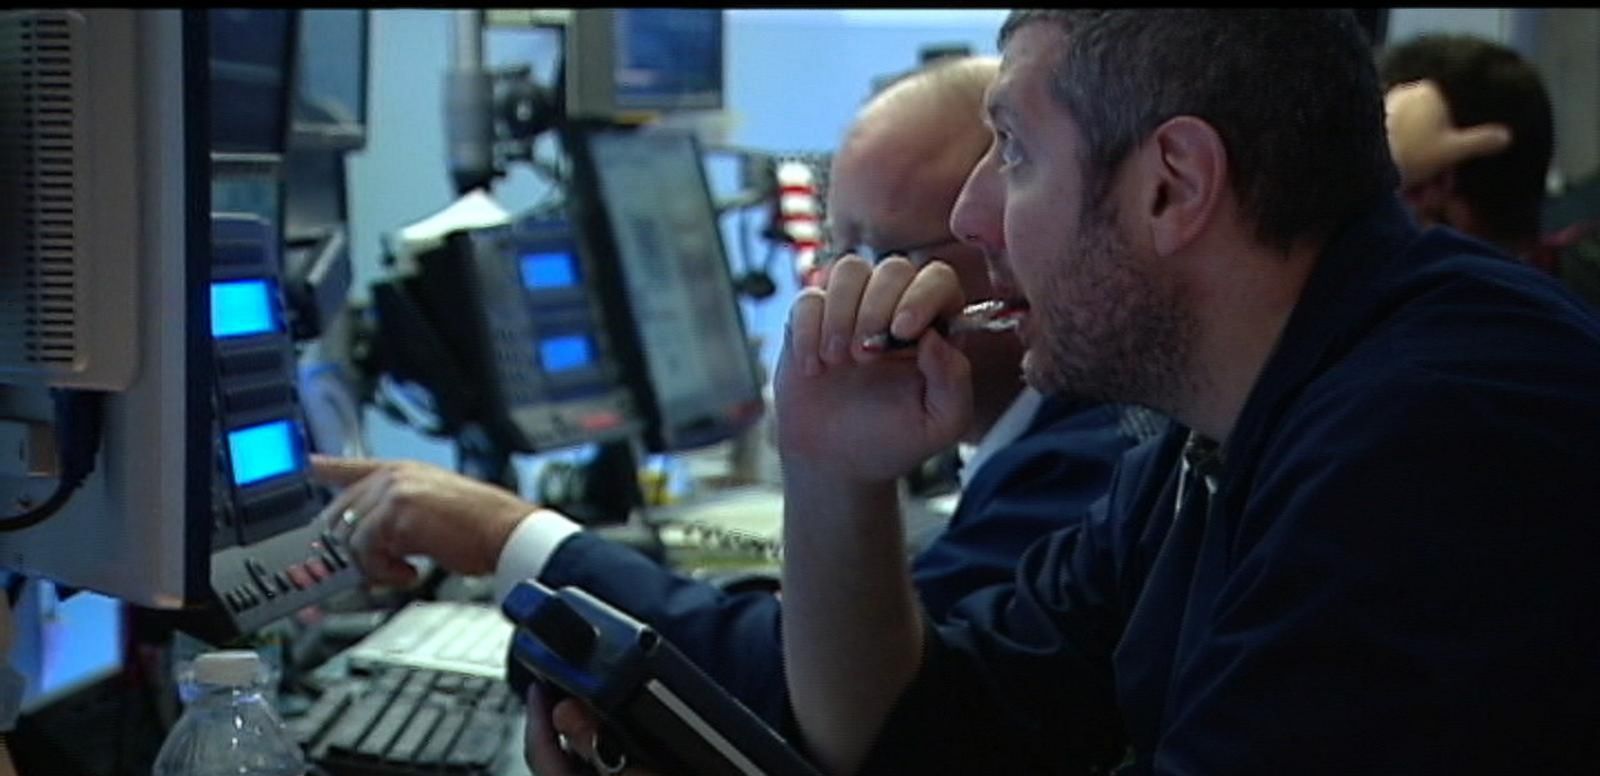 VIDEO: Russia's Shaky Economy Leaves Questions About Dow Rally